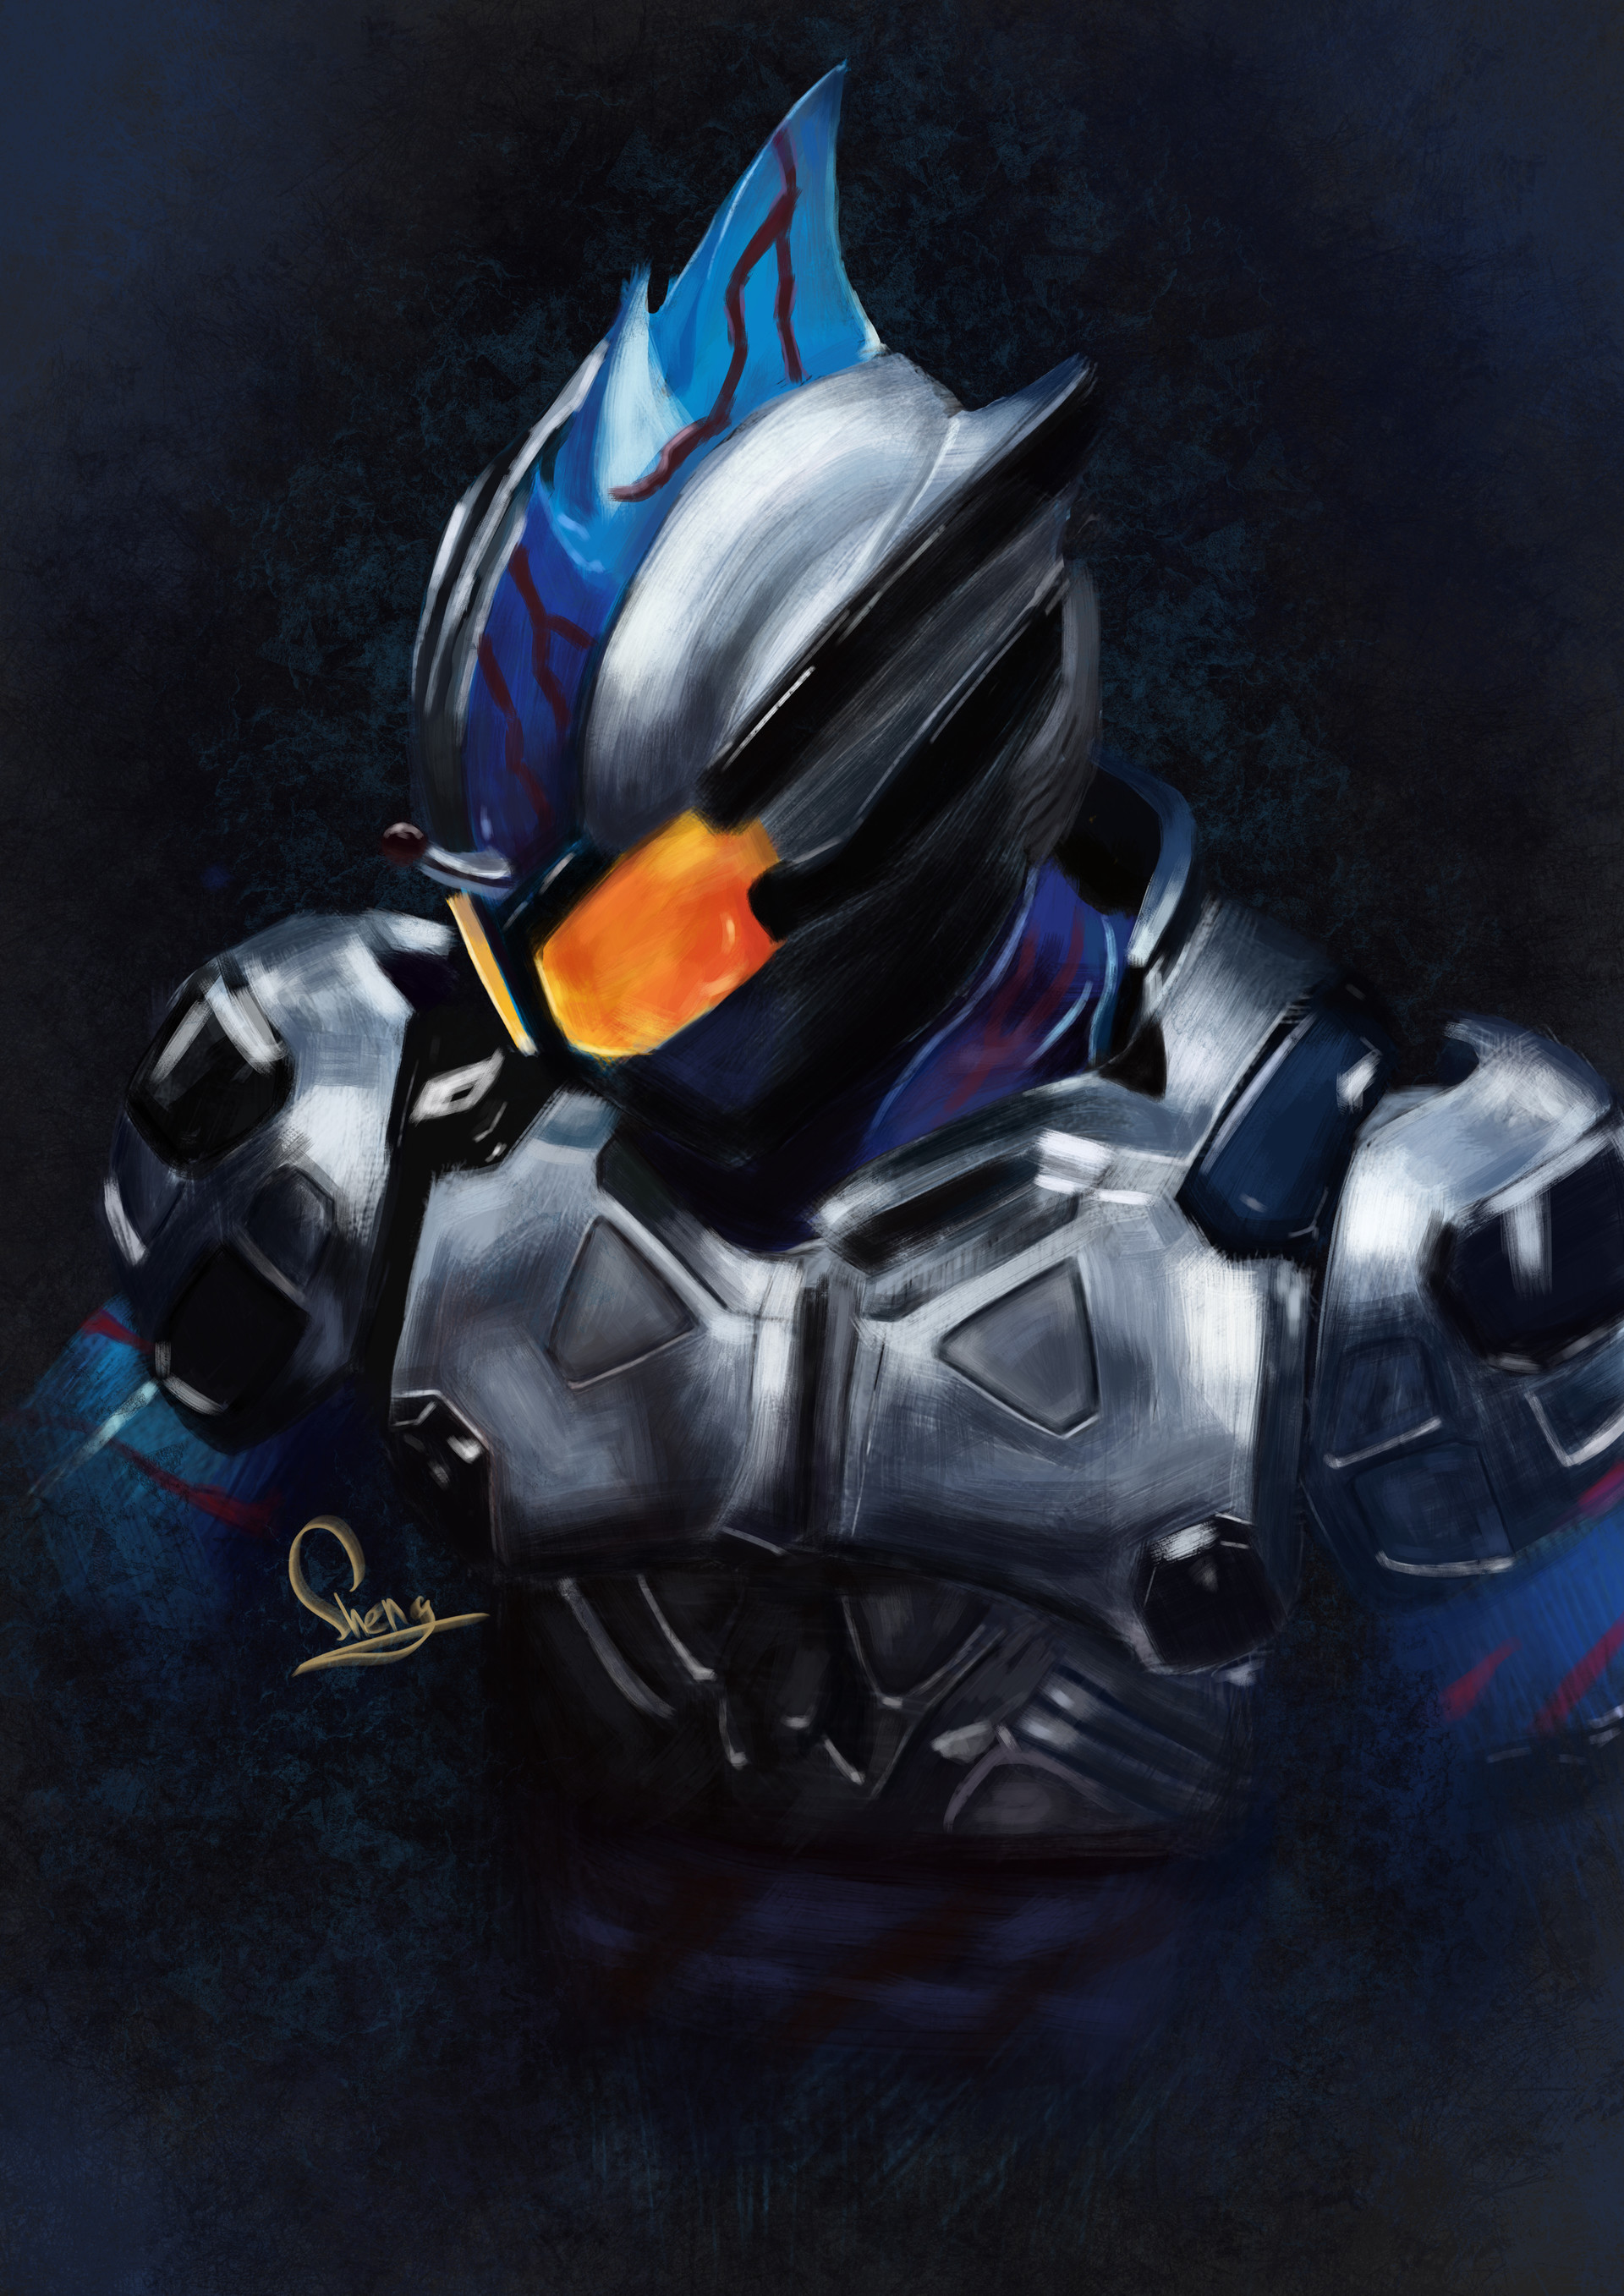 Yet Sheng Lee Kamen Rider Amazon Neo